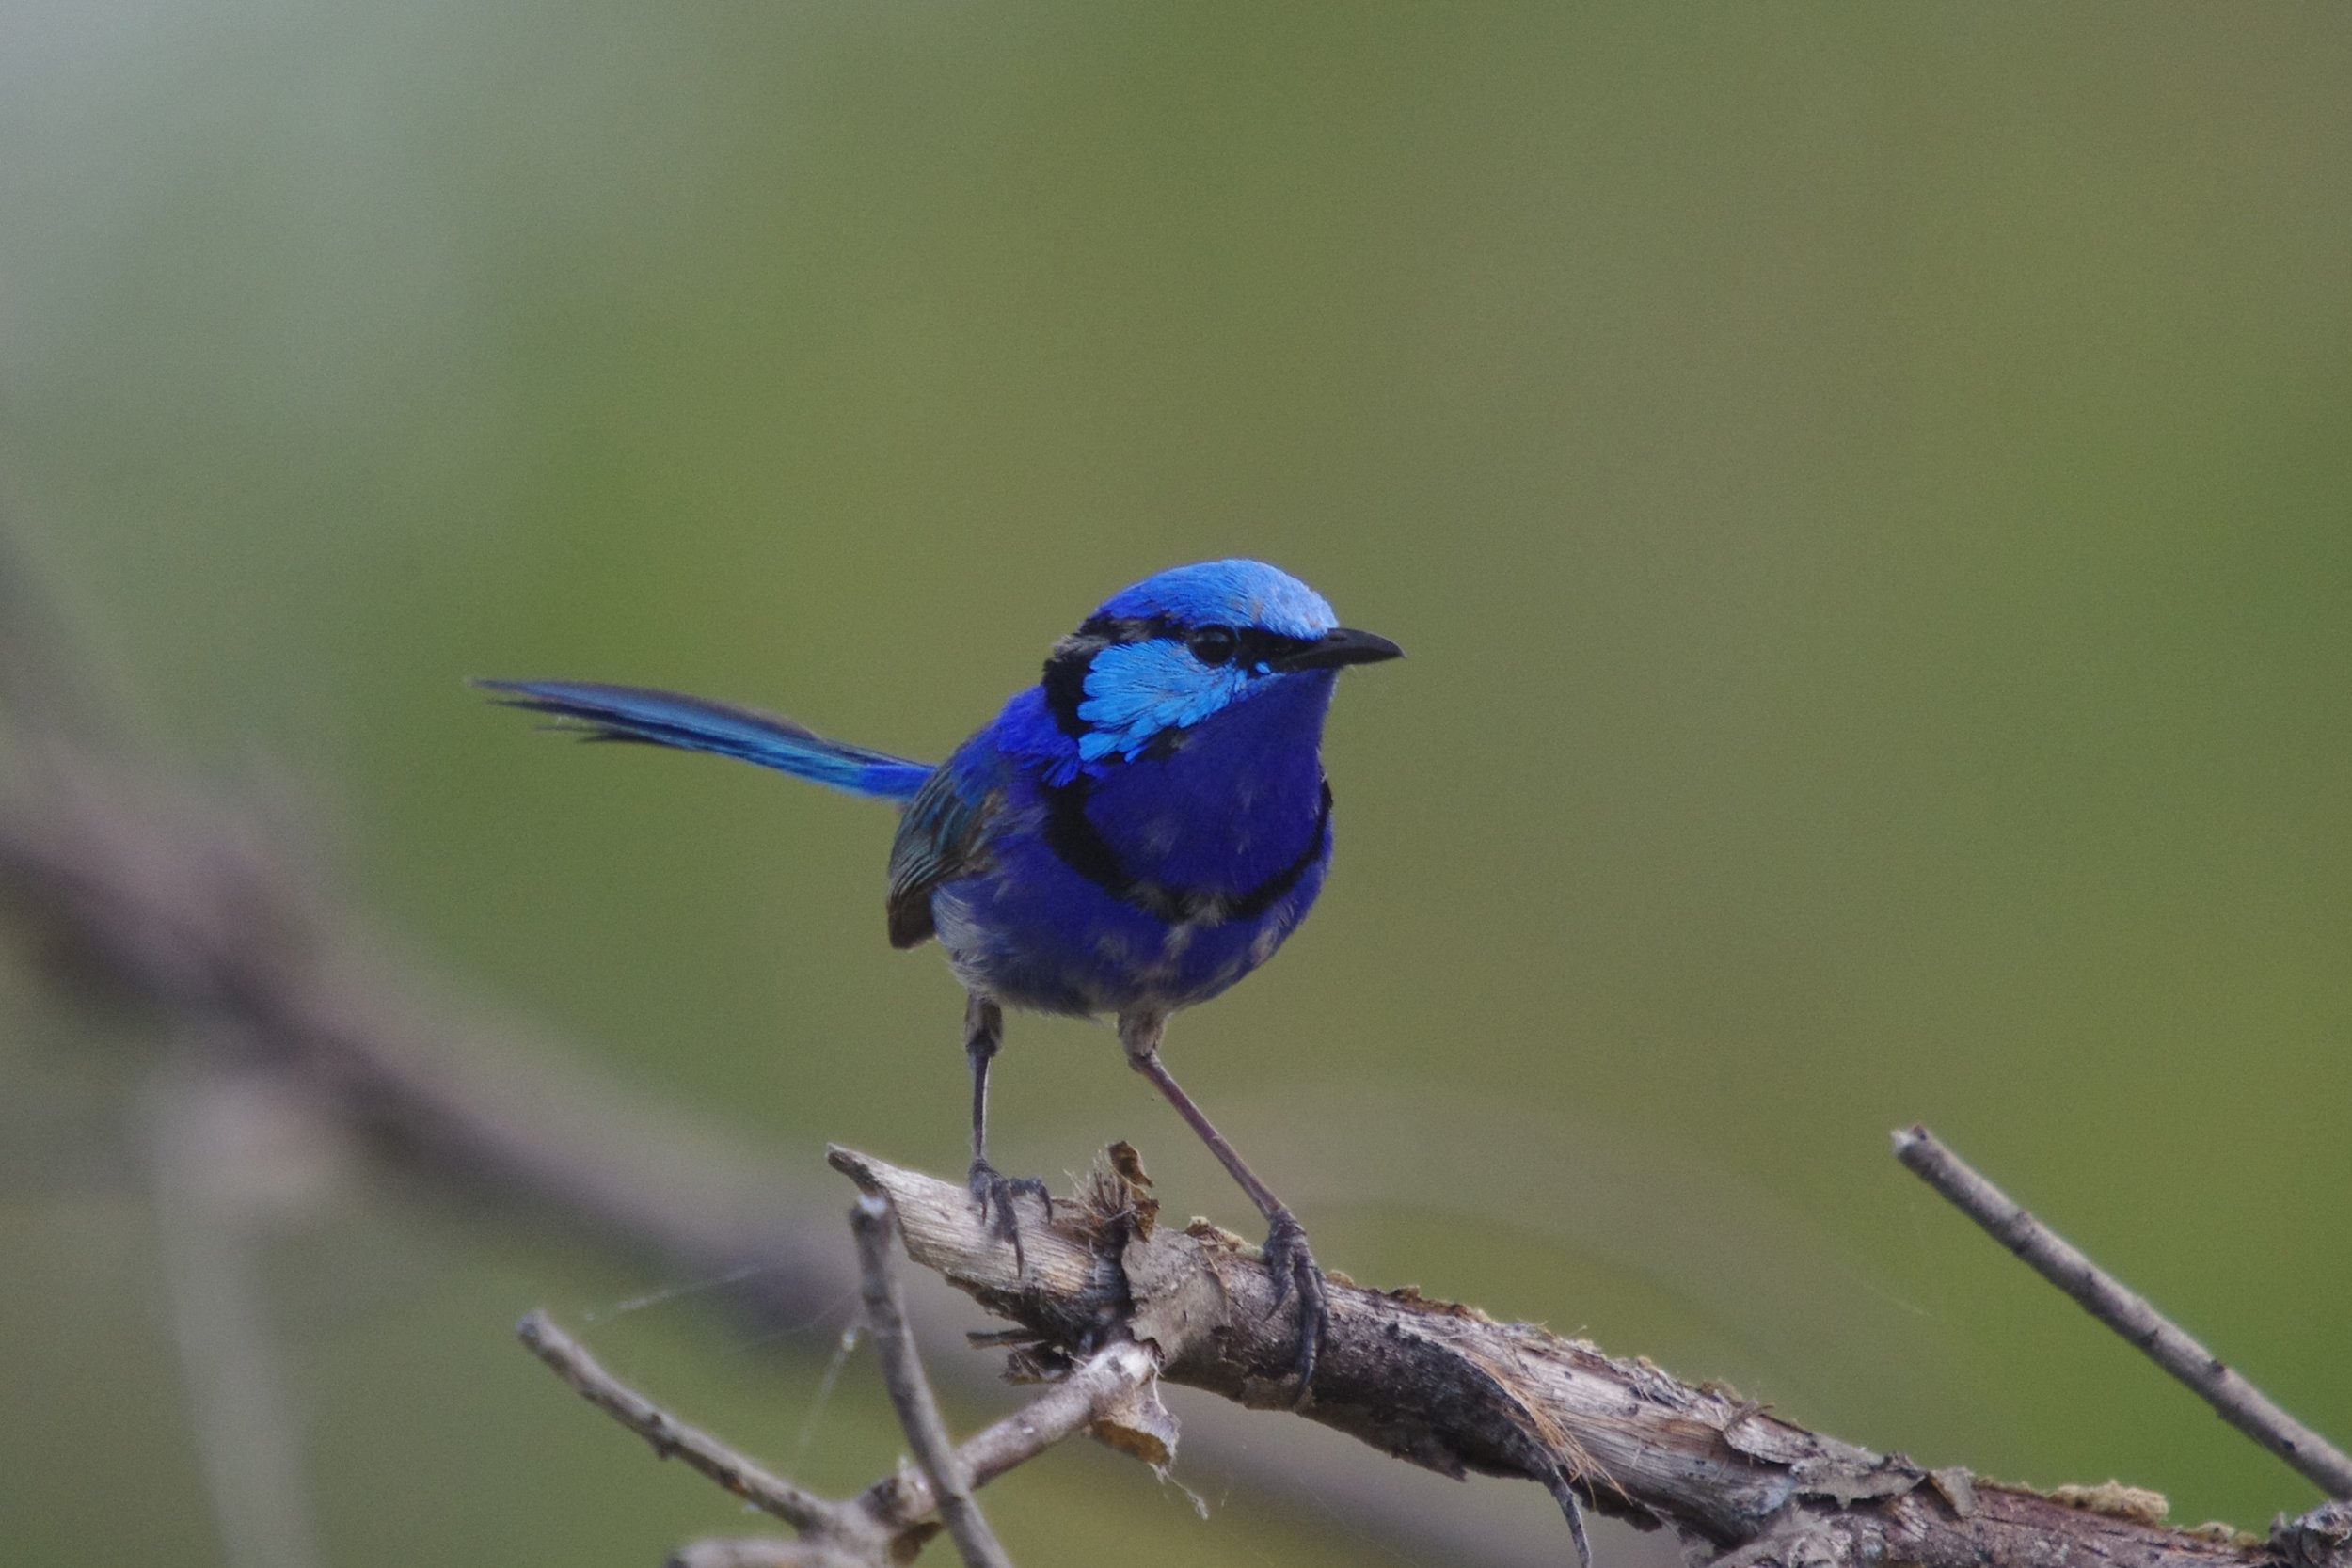 Male Blue Wren in Western Australia